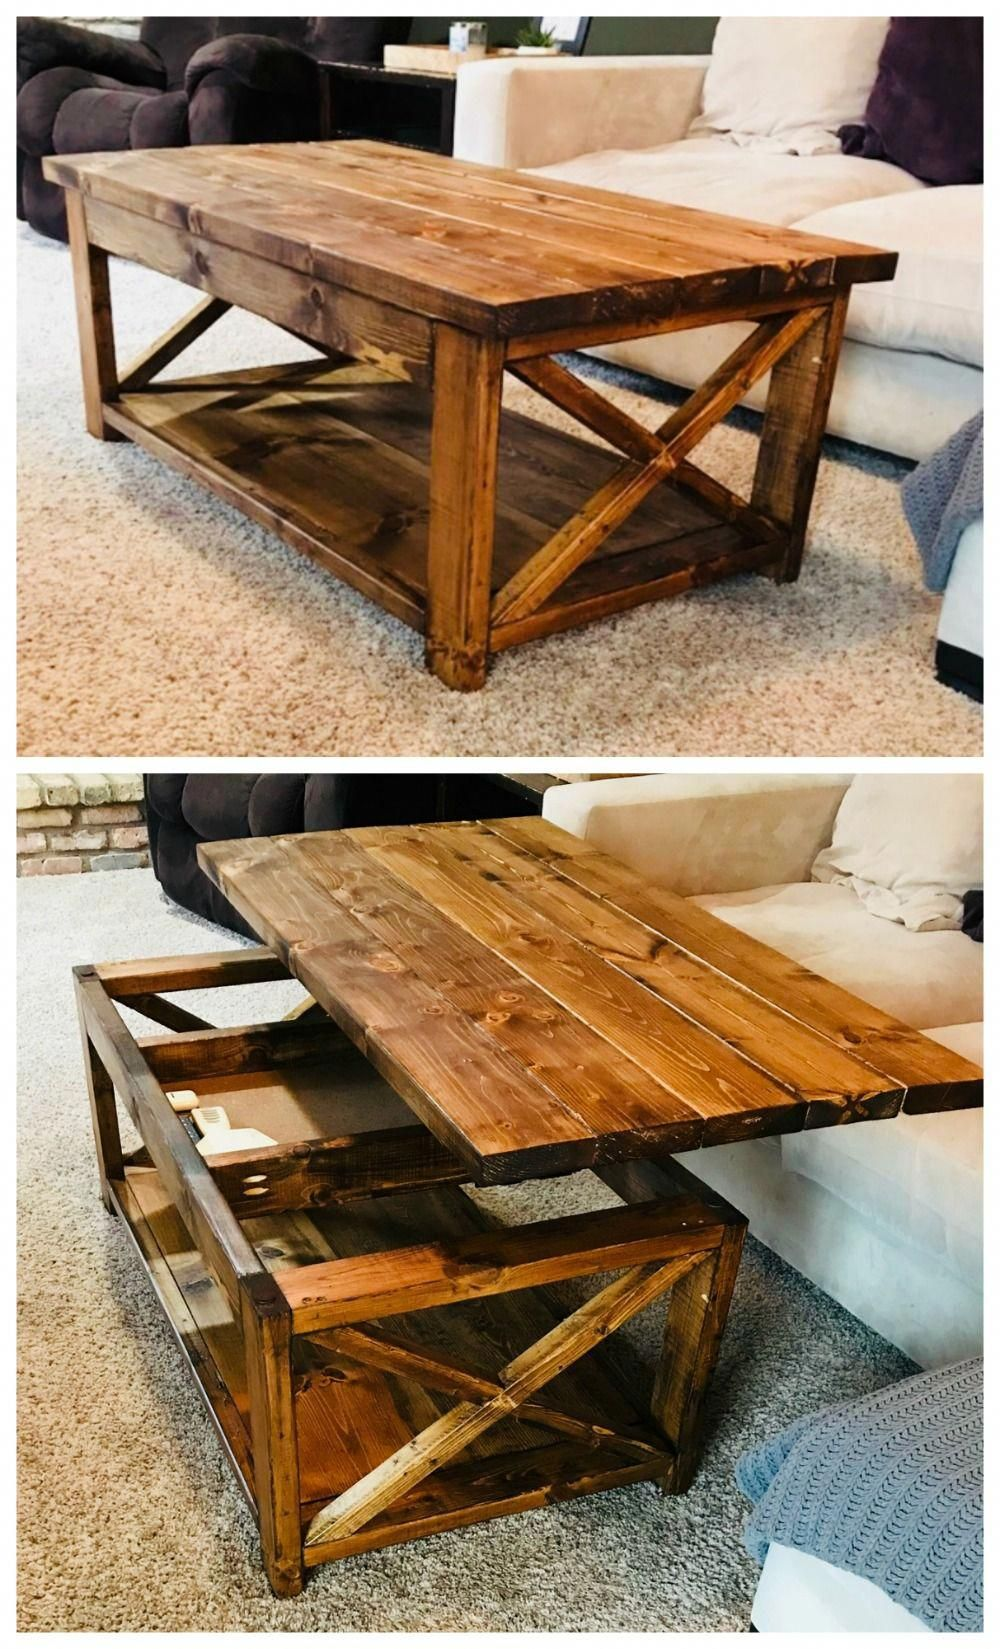 Ana White Hinged Top Diy Projects Diy Furniture Plans